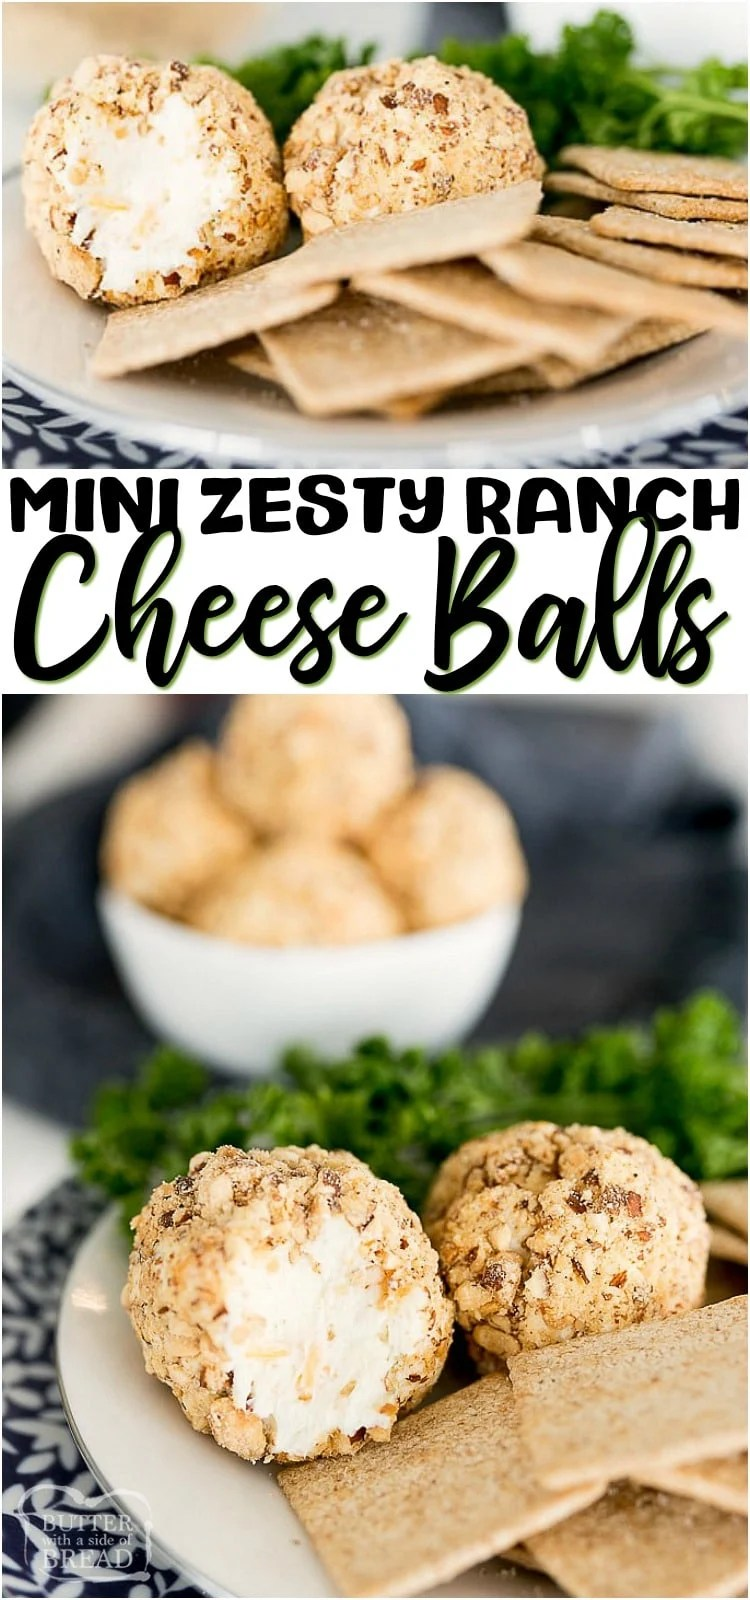 Mini Cheese Balls are everything you love about an ordinary Cheese Ball, only personal sized! The zesty ranch cream cheese ball recipe smeared on a crunchy cracker is the best appetizer around. #appetizer #cheeseballs #ranch #creamcheese #cheese #cheeseballrecipe from BUTTER WITH A SIDE OF BREAD